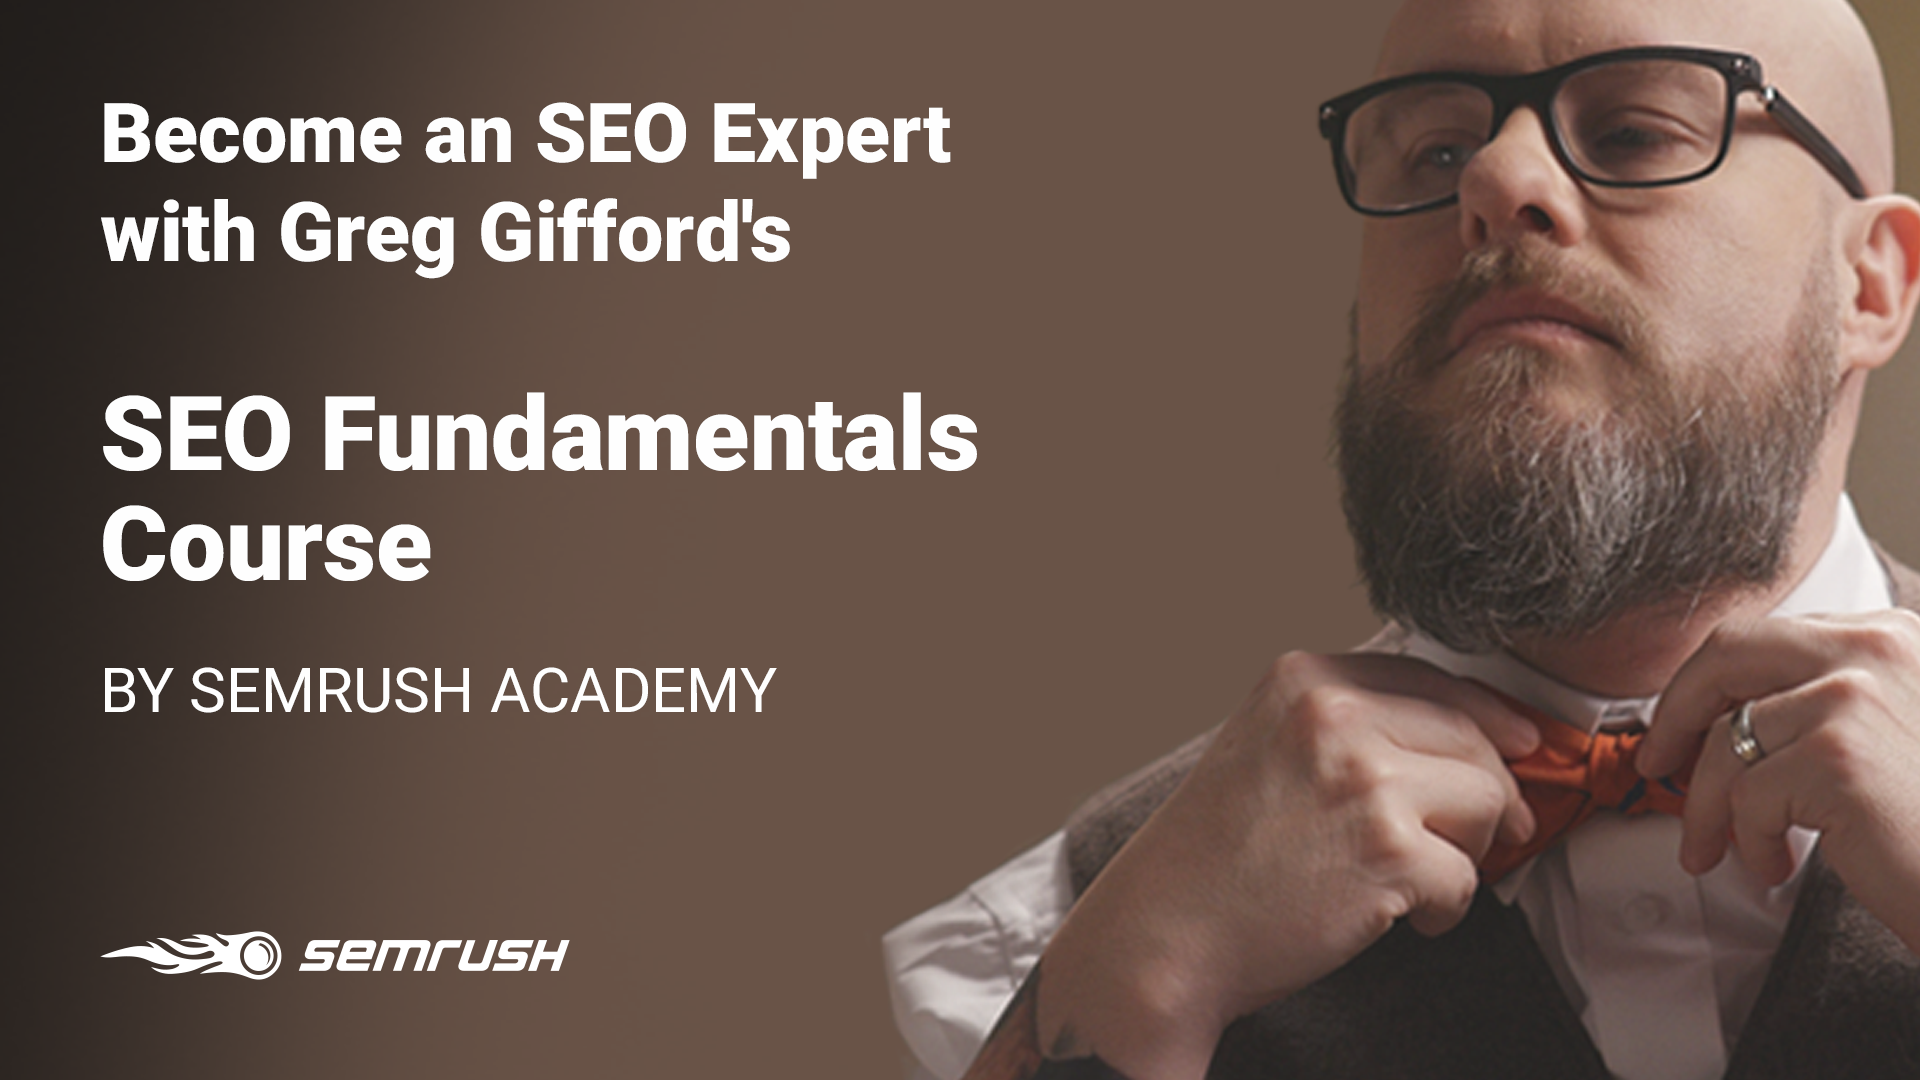 Corso online di web marketing gratis: SEMrush Academy